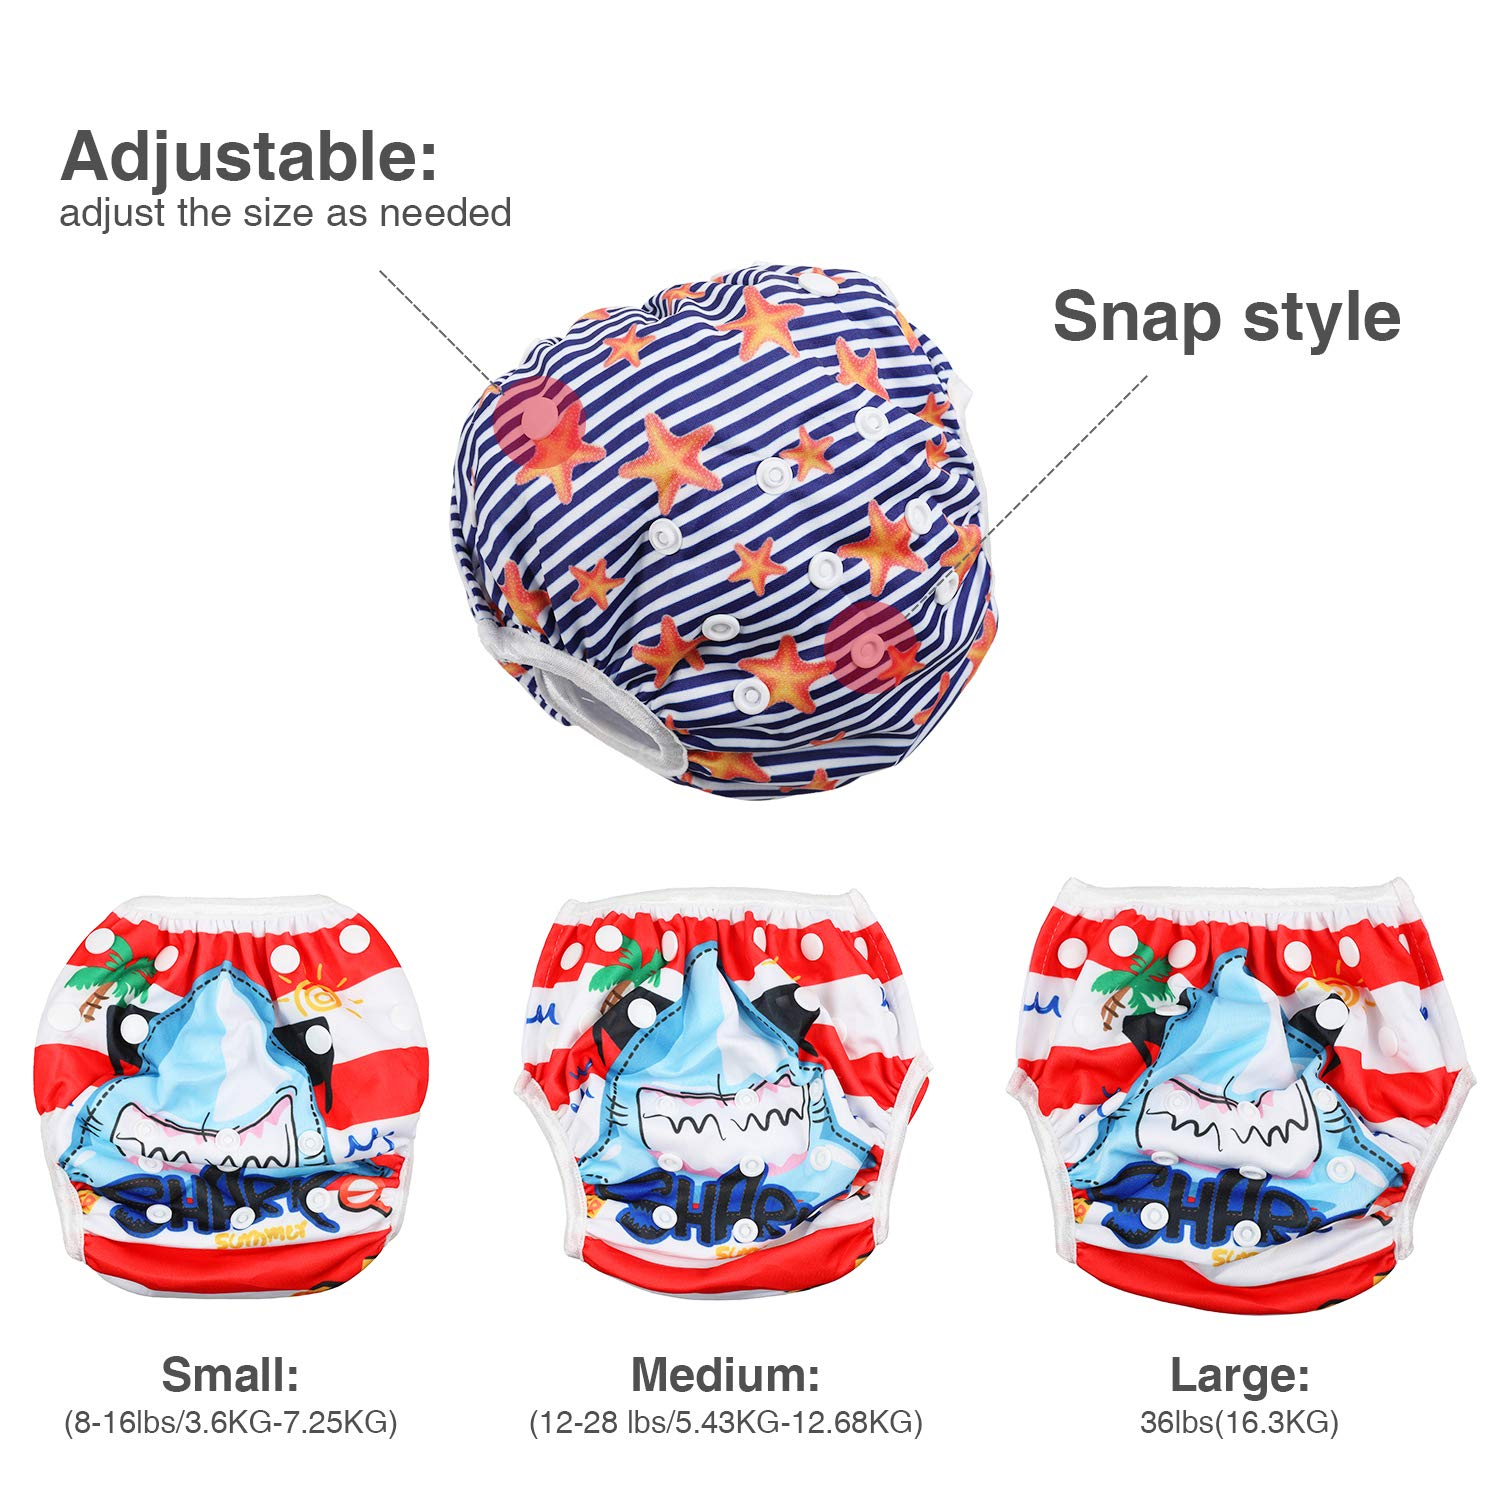 Reusable Swim Nappy Swimming Pants Adjustable Baby Swimwear Fits for 0-3 Years Old Baby Weighs 8-36lbs//3.6-16.3kg Mermaid and Beach Starfish Design Lictin Swim Diaper